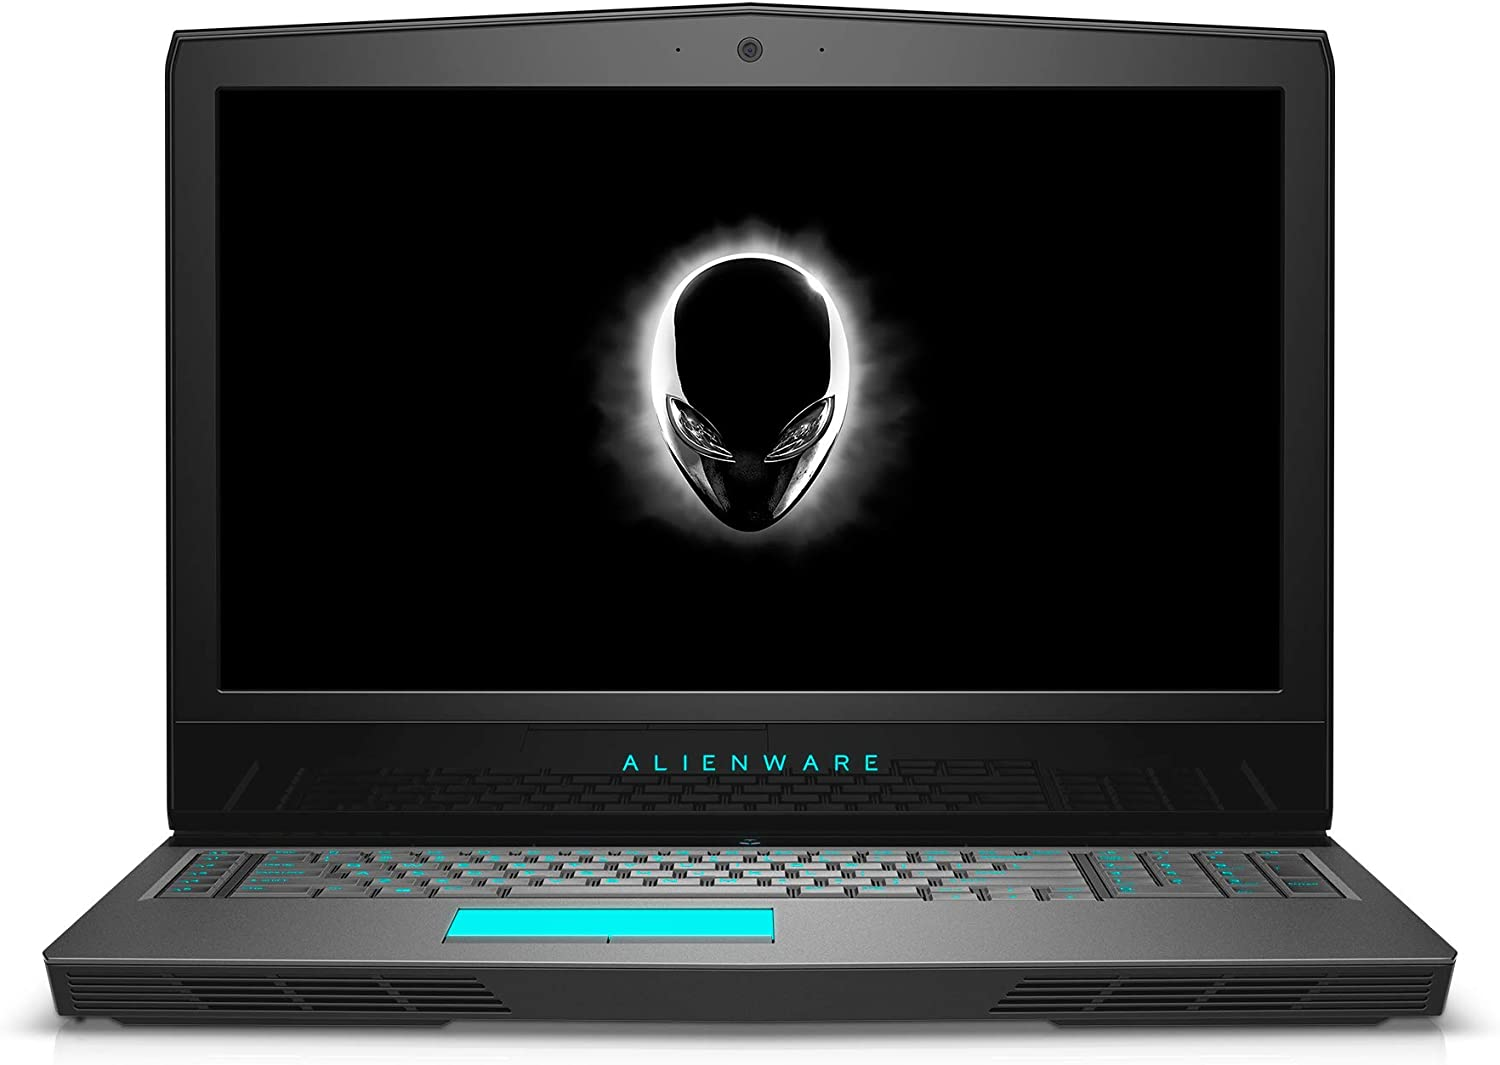 Alienware Gaming AW17R5-7405SLV-PUS 8th Gen Intel Core i7 Processor Laptop, 8GB RAM, 1TB Hard Drive Plus 8GB SSD, NVIDIA GeForce GTX 1060, 17.3